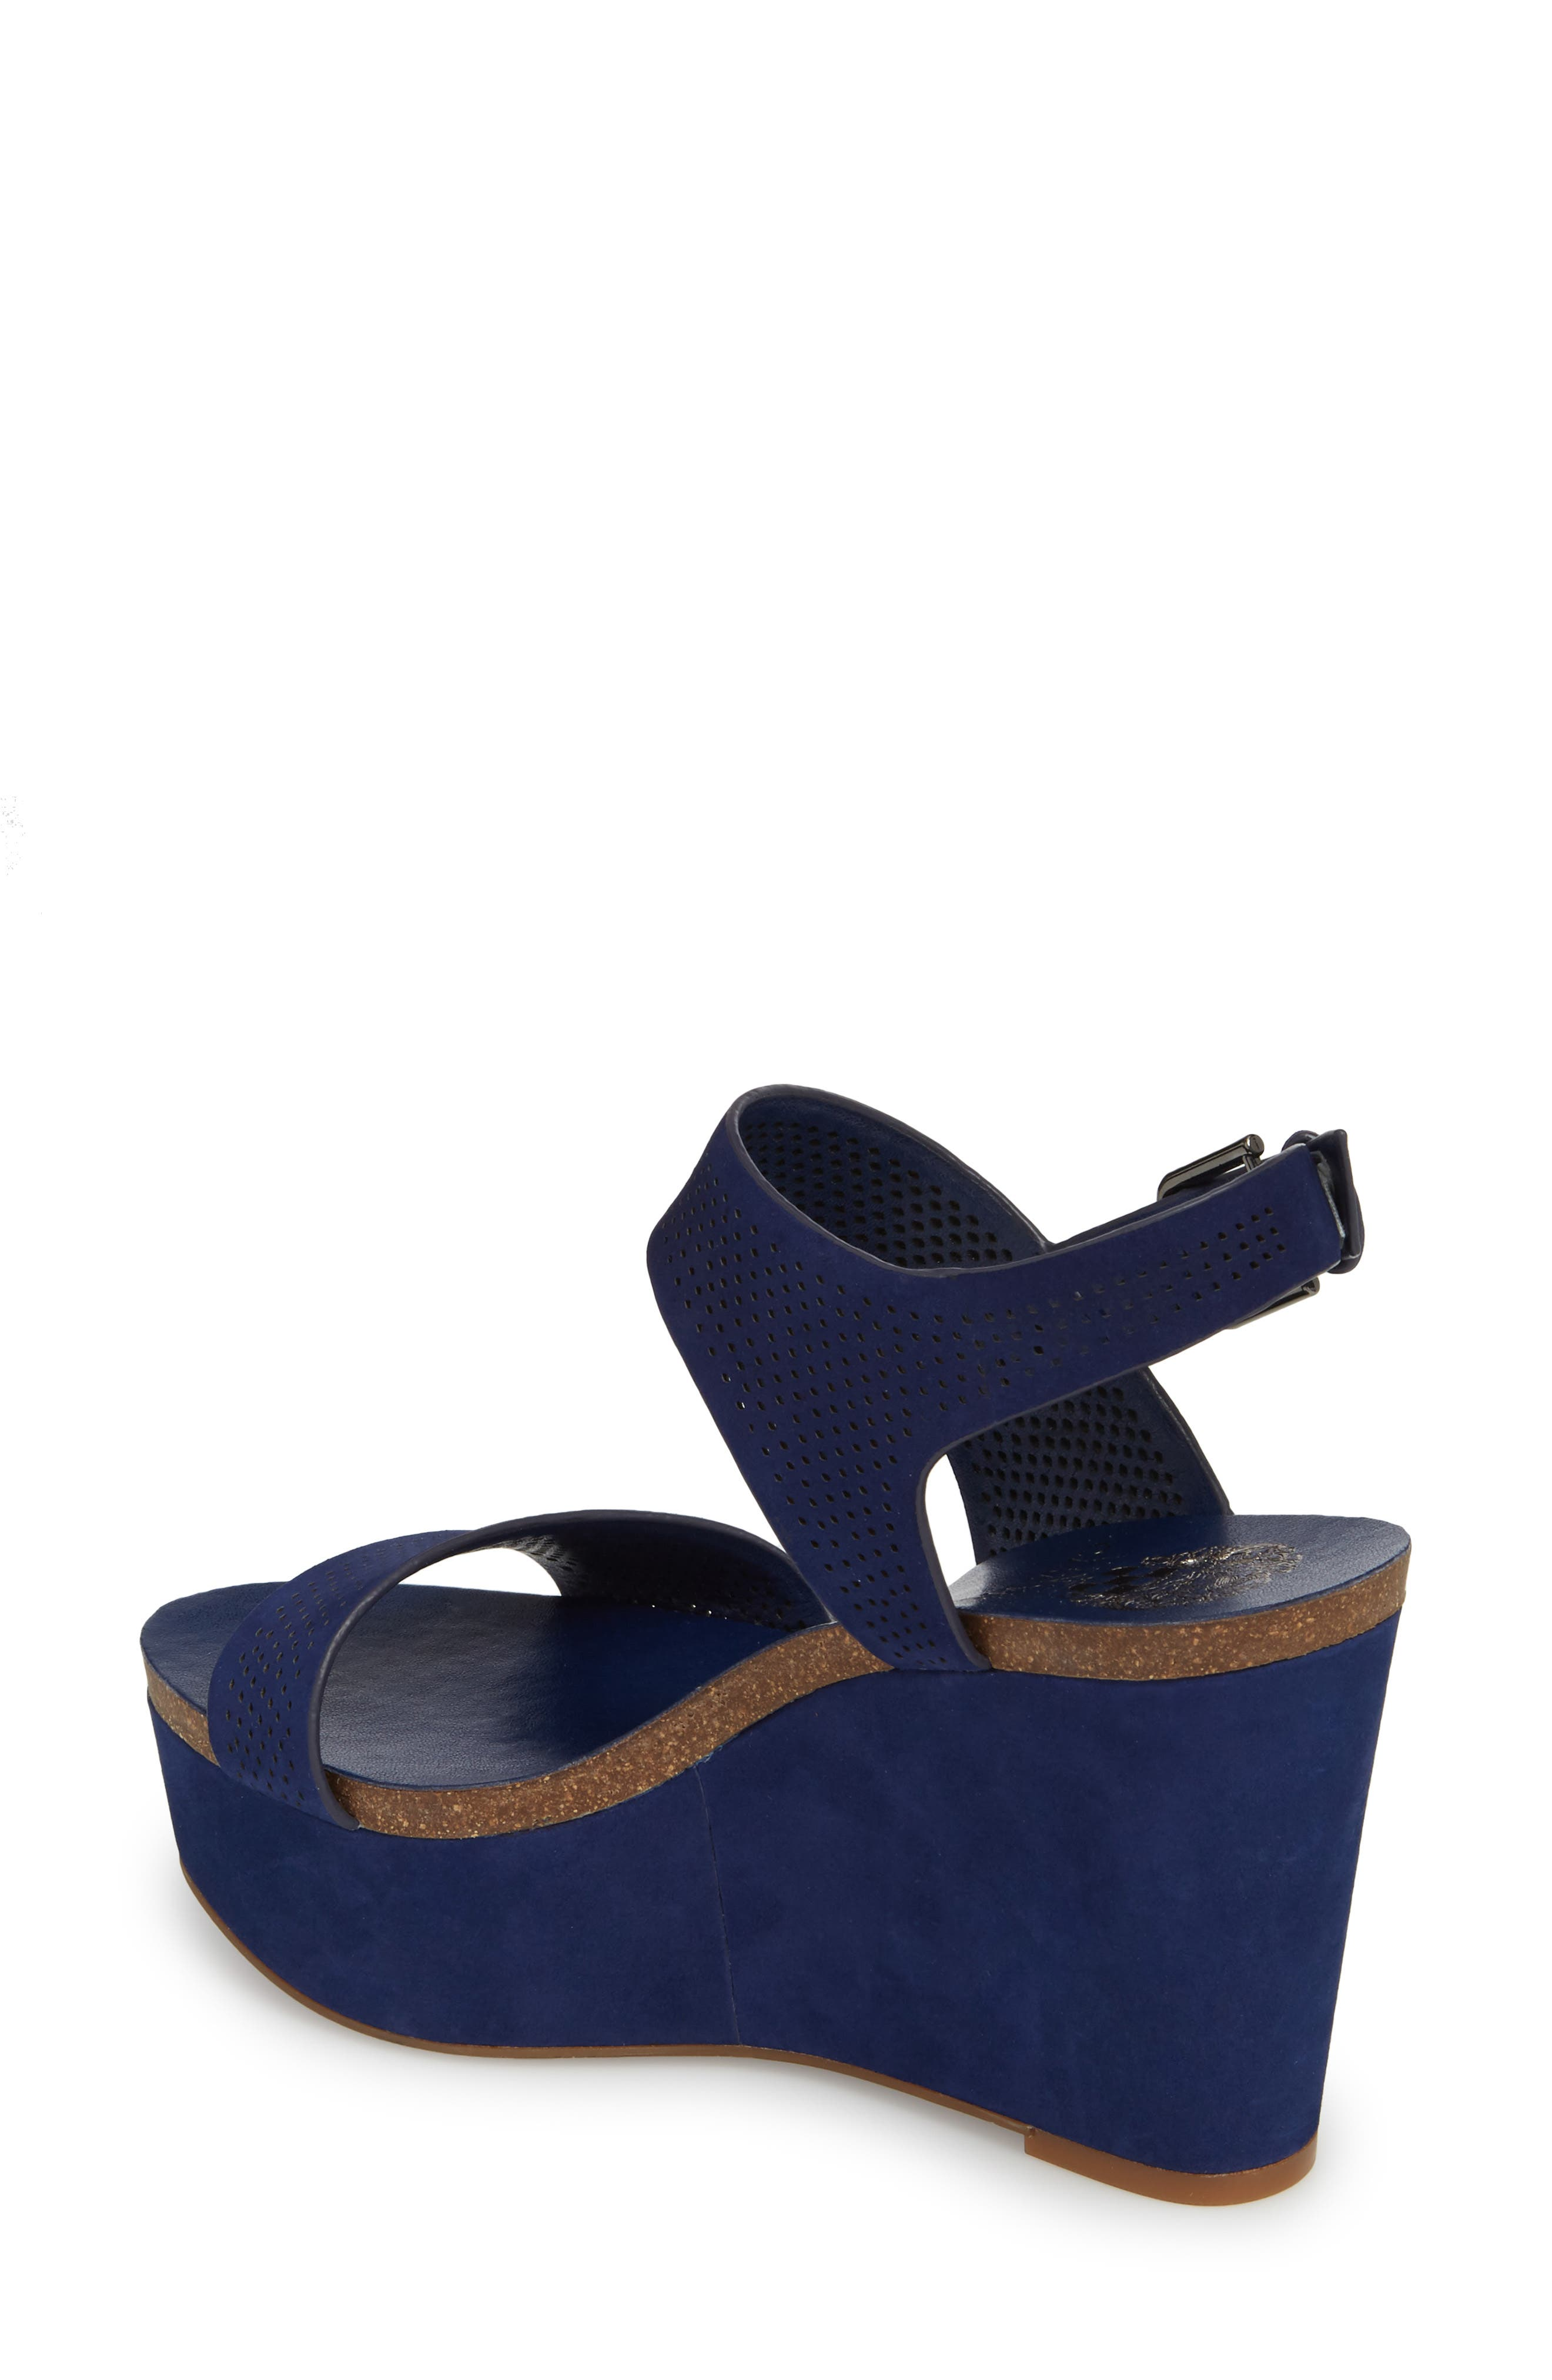 Vessinta Platform Wedge,                             Alternate thumbnail 2, color,                             Moody Blue Leather